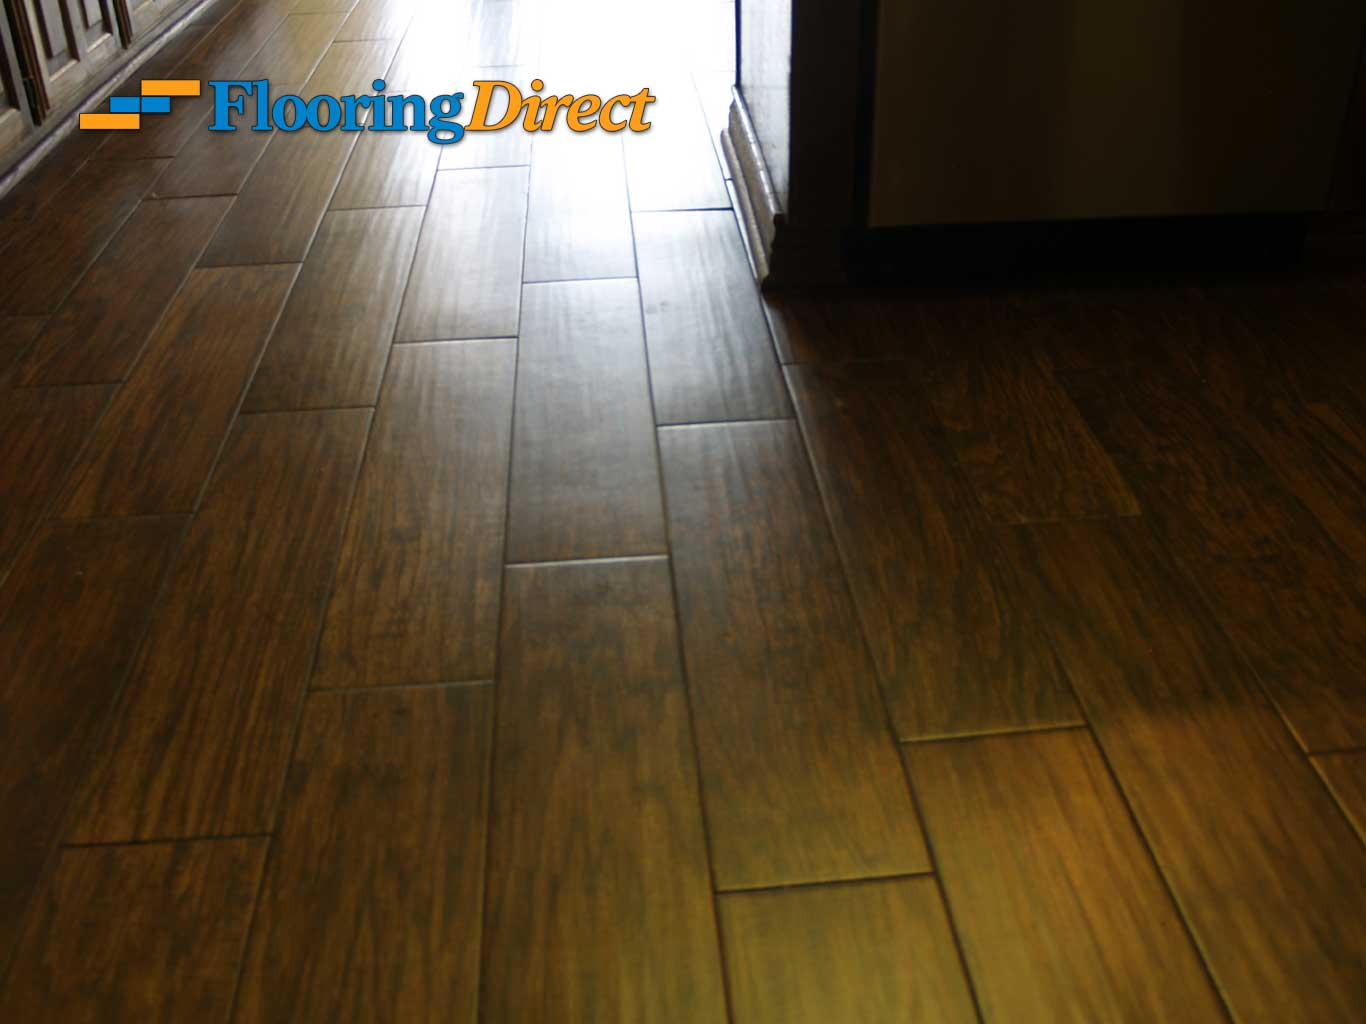 Wood look tile flooring serving all of dfw flooring direct wood look tile flooring by flooring direct serving all of dfw including richardson doublecrazyfo Choice Image